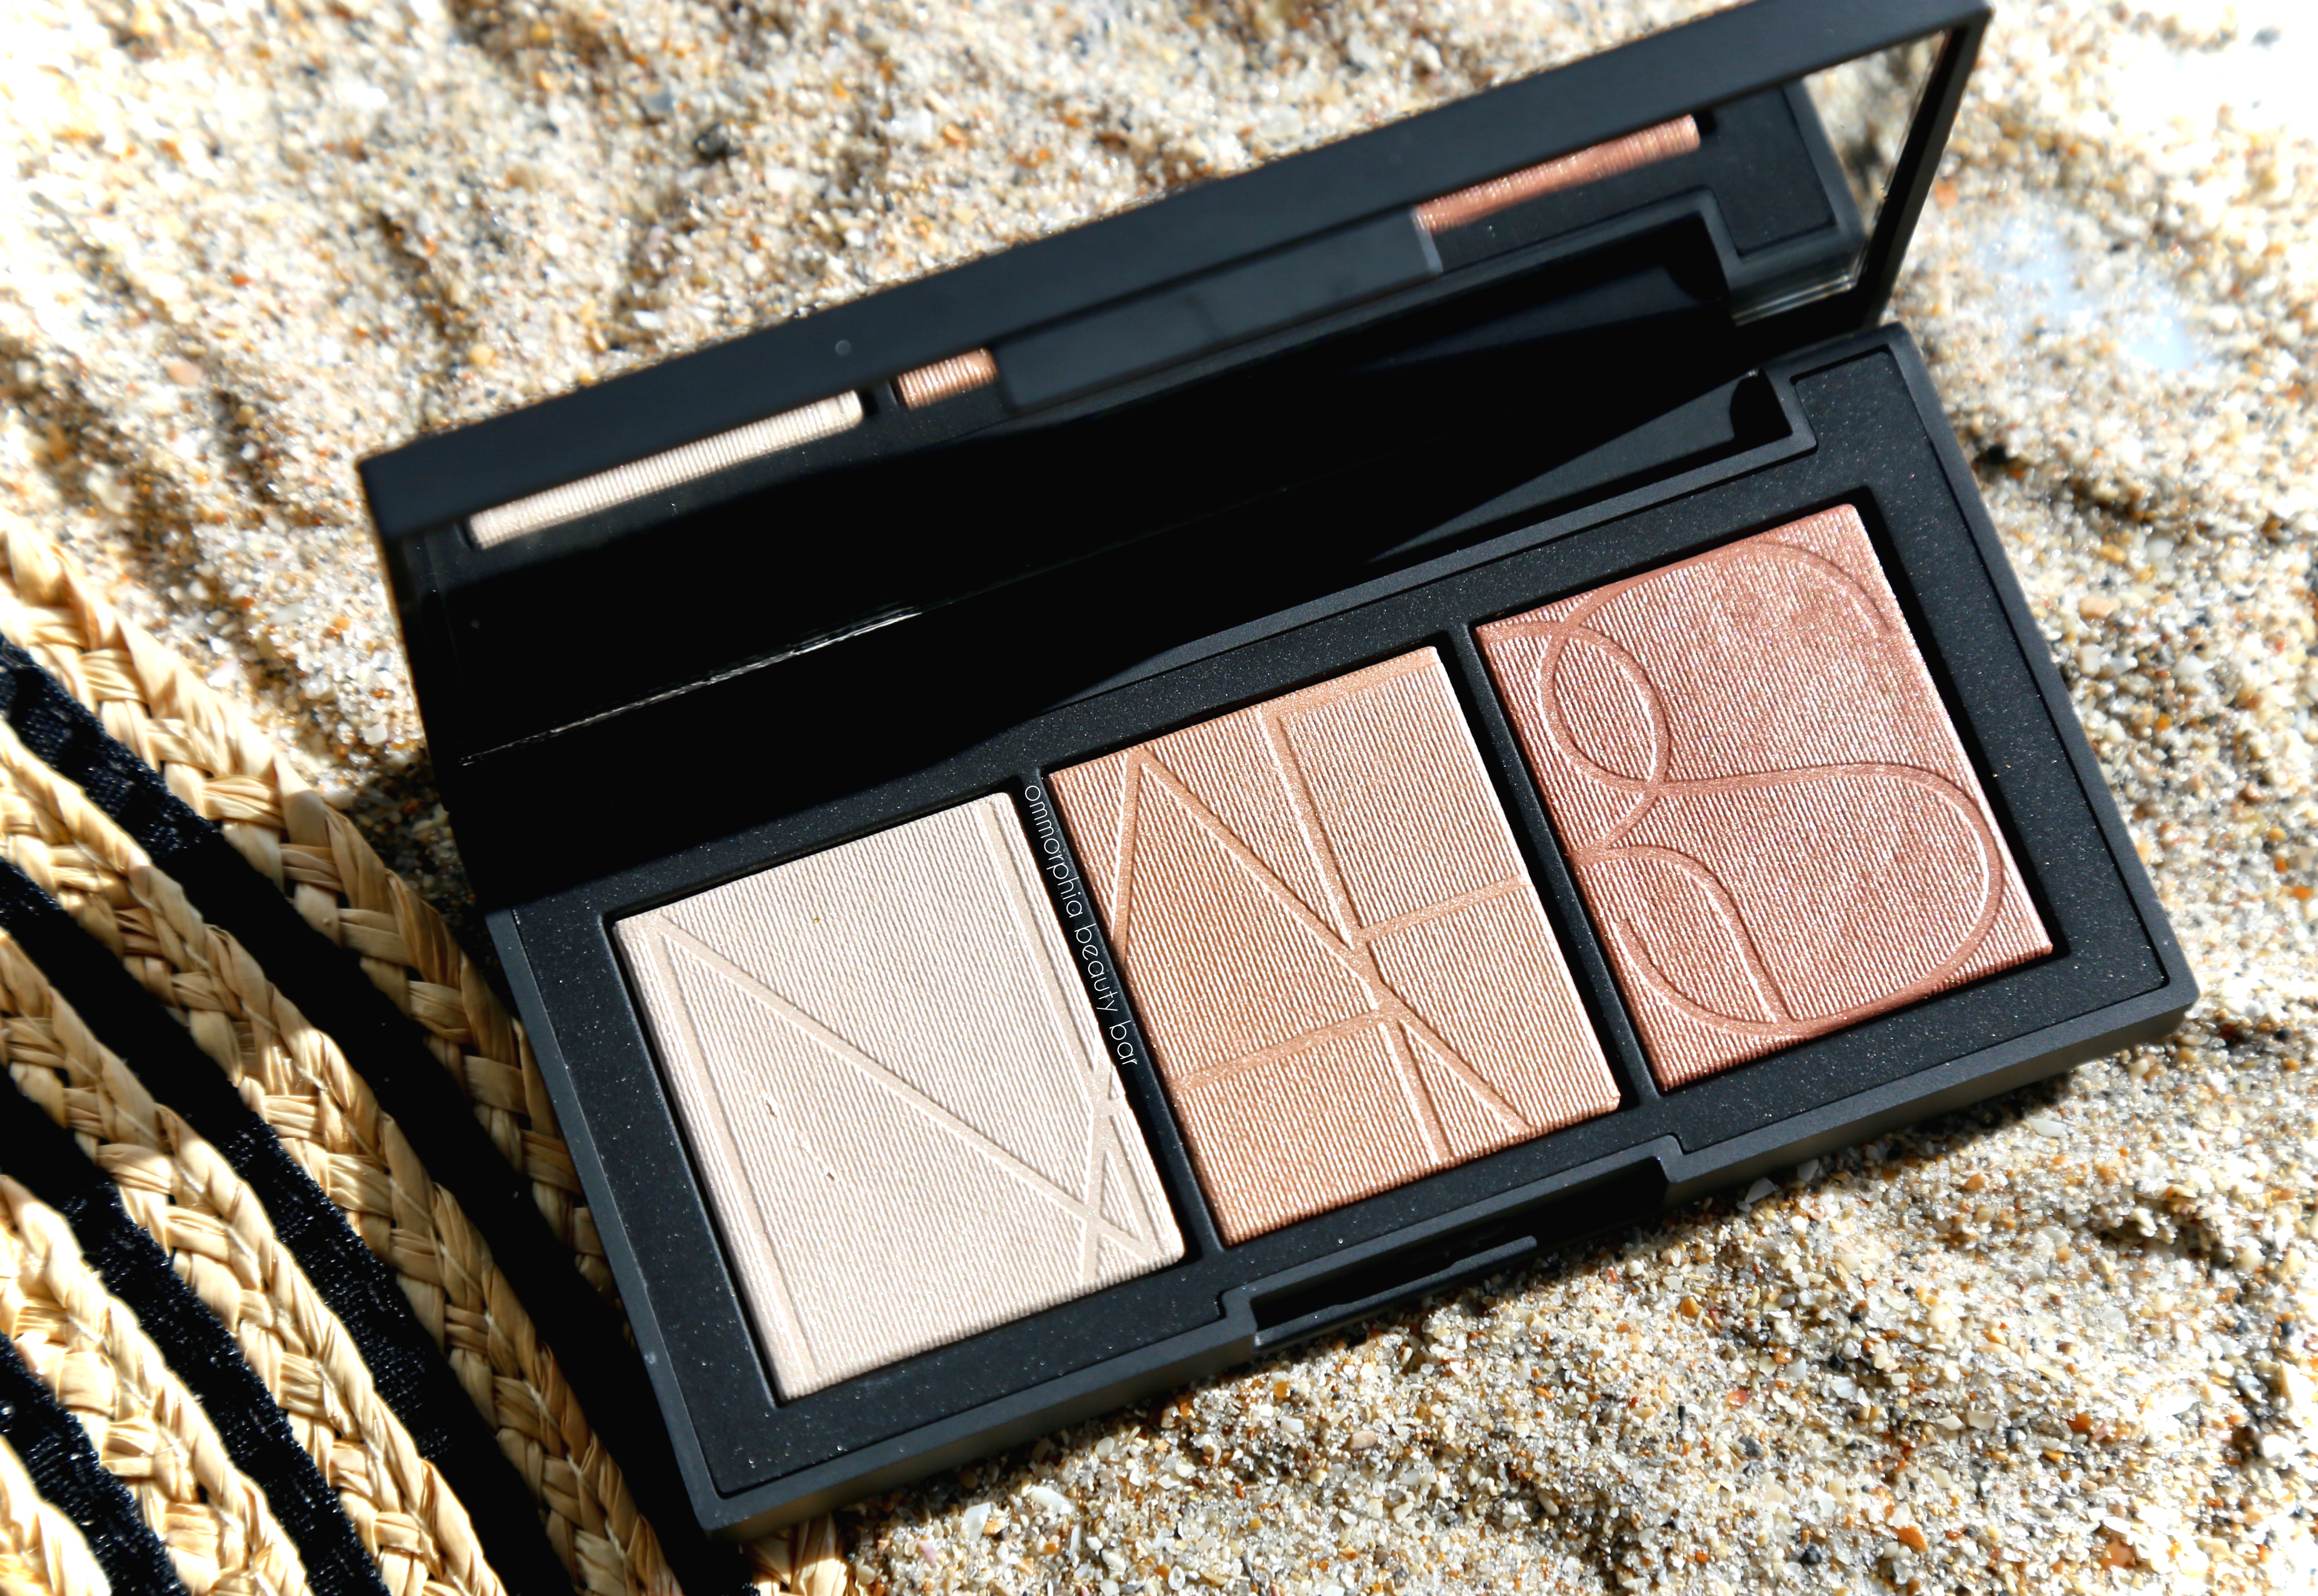 nars banc de sable highlighting palette ommorphia. Black Bedroom Furniture Sets. Home Design Ideas